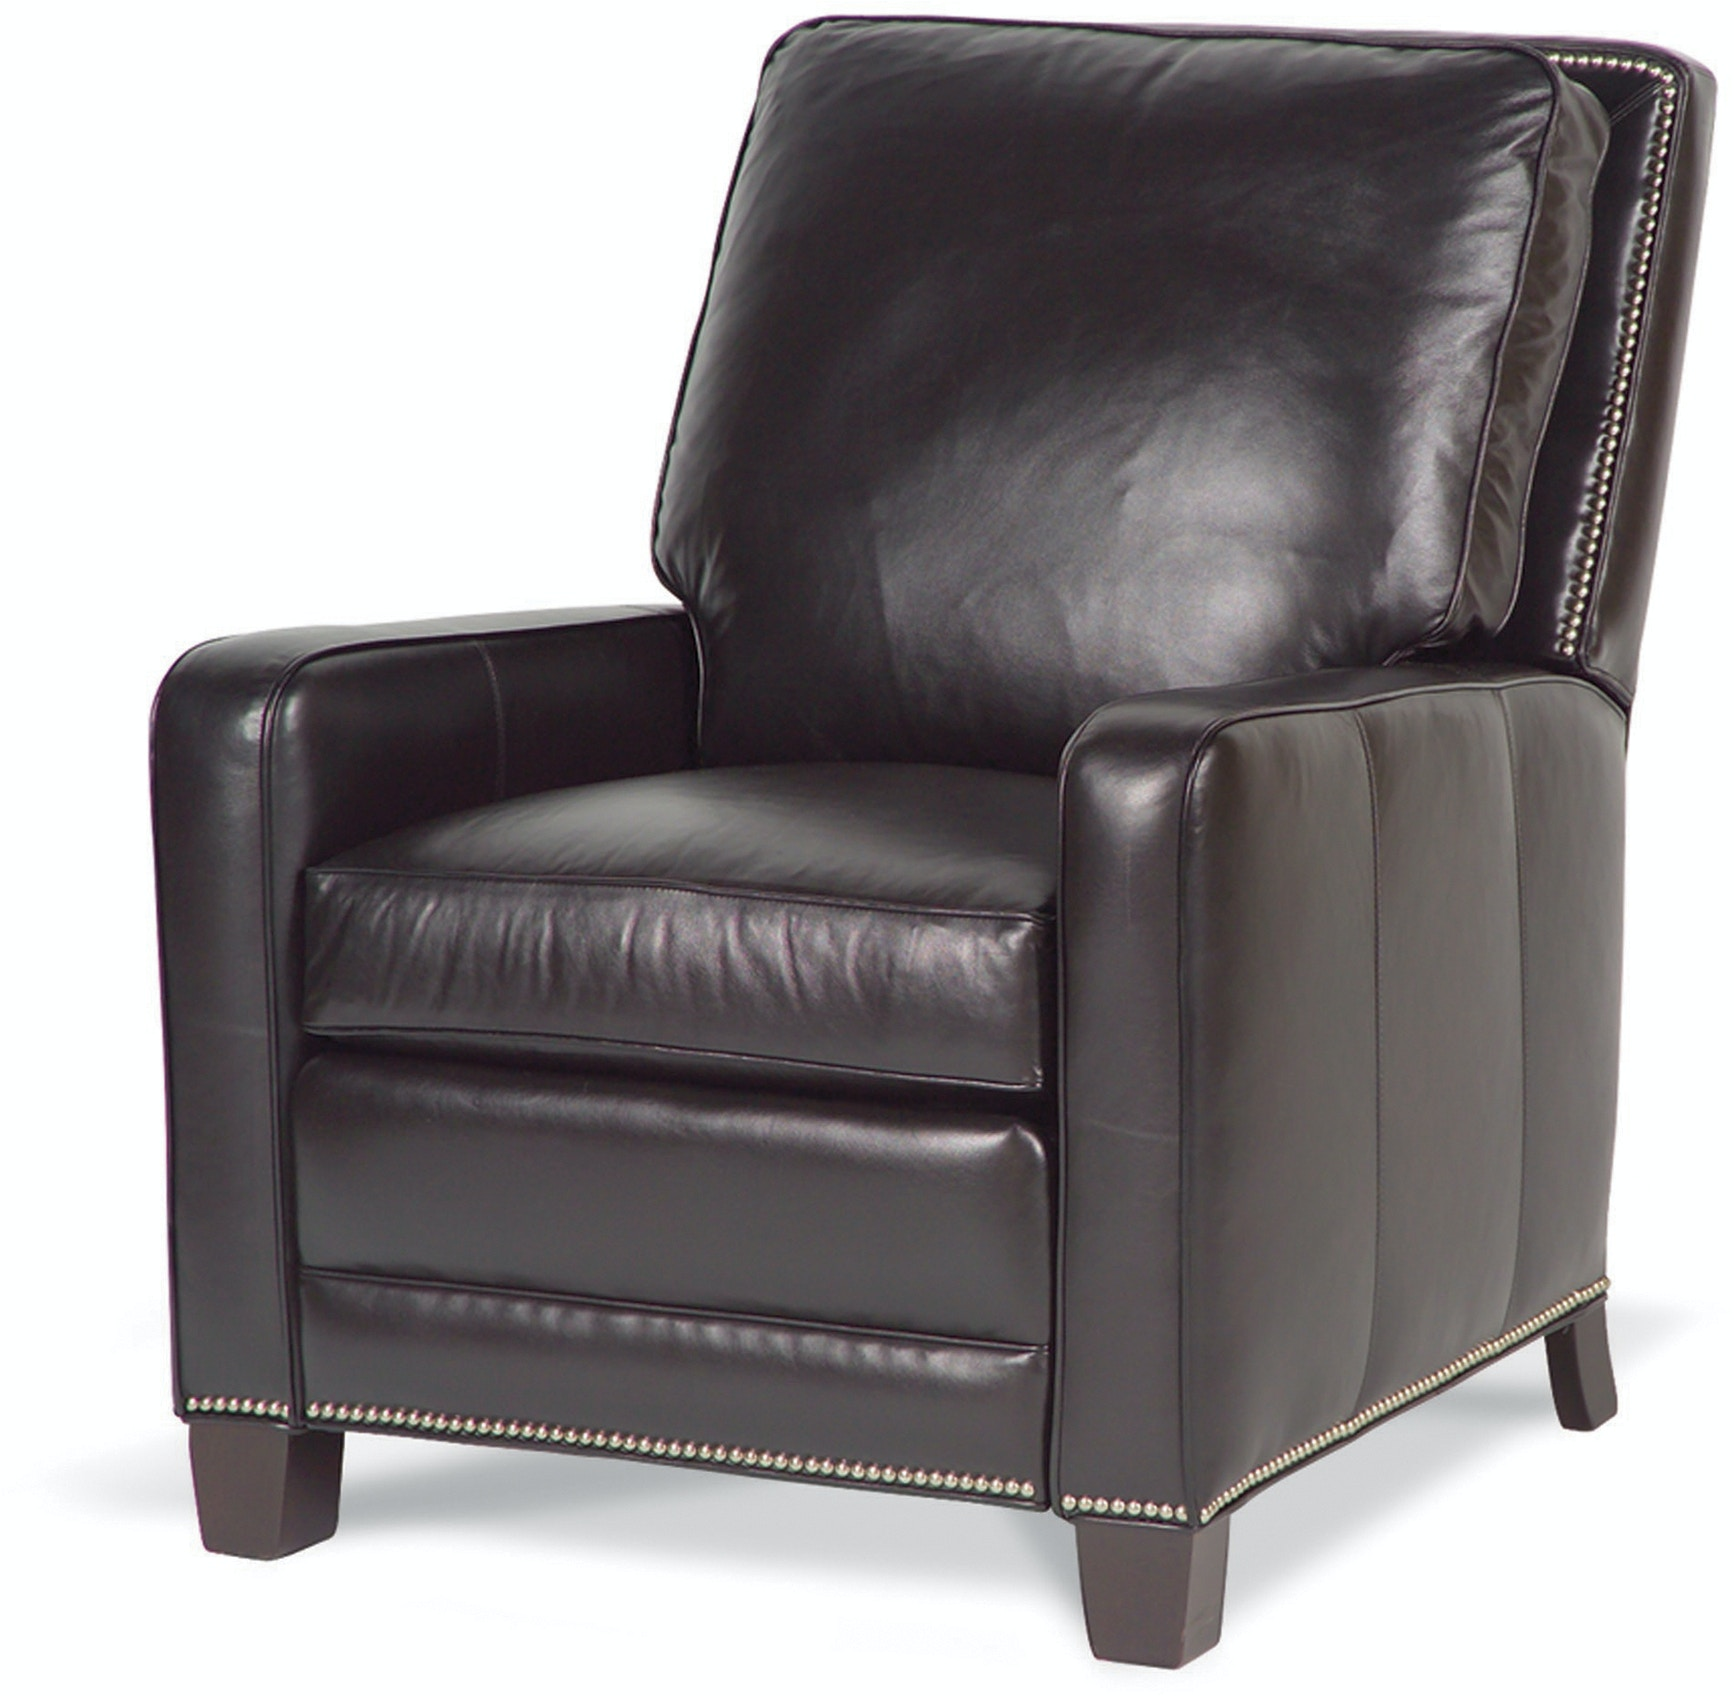 Taylor King Furniture L908 H Living Room ATTITUDE RECLINING CHAIR